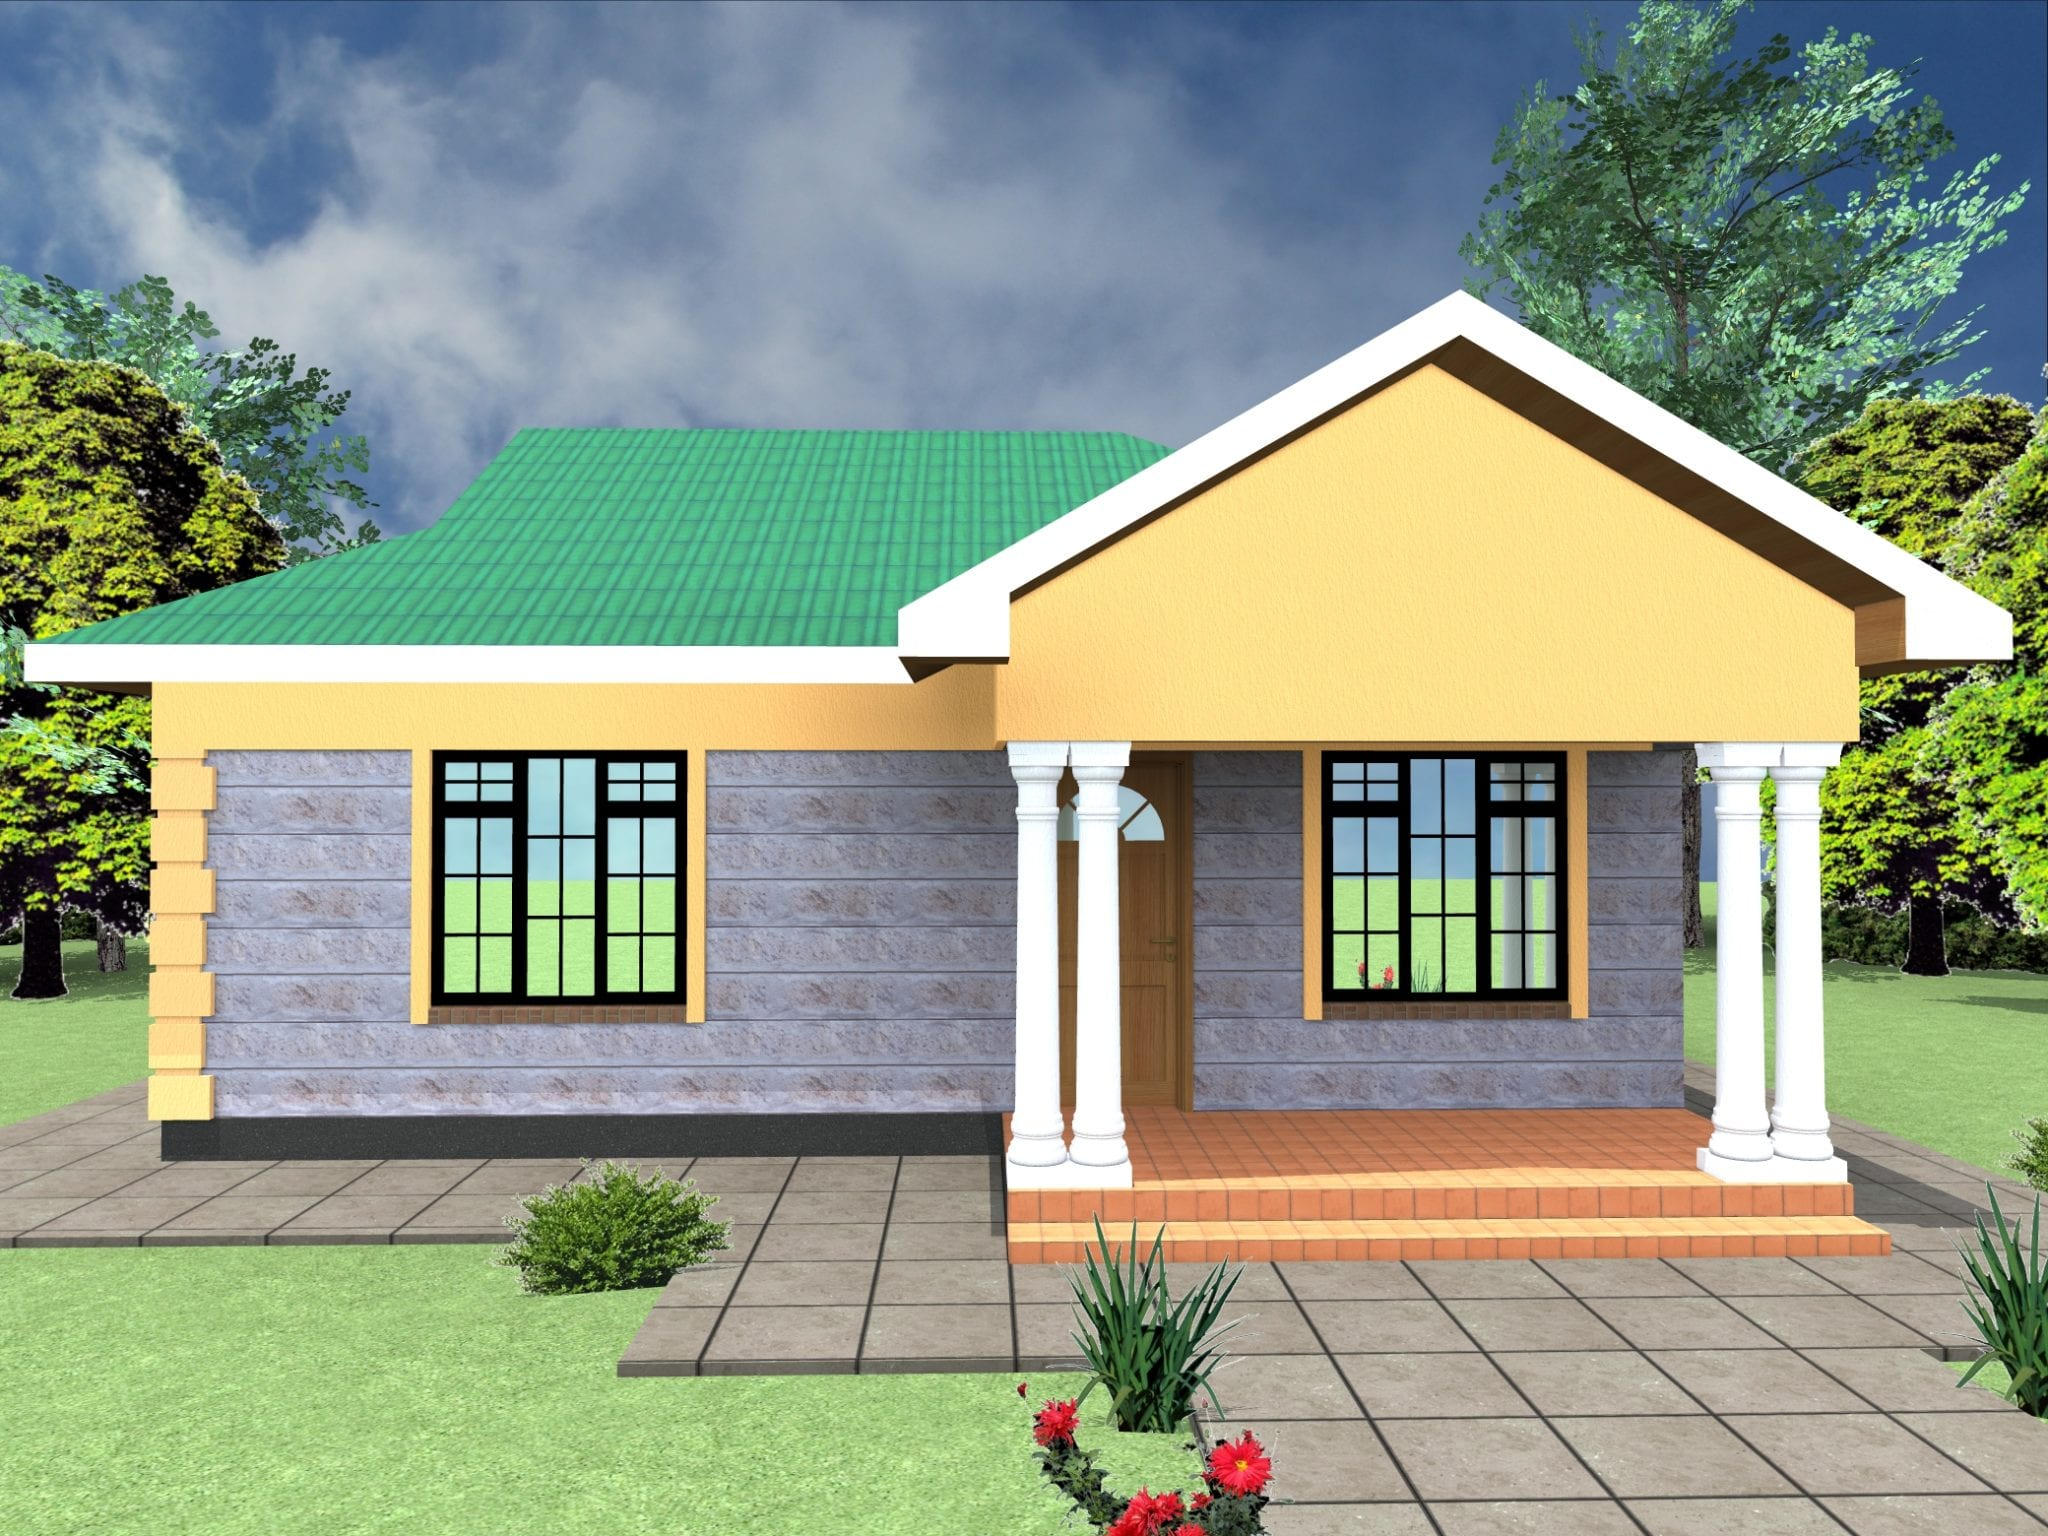 Beautiful bungalow designs in kenya | HPD Consult